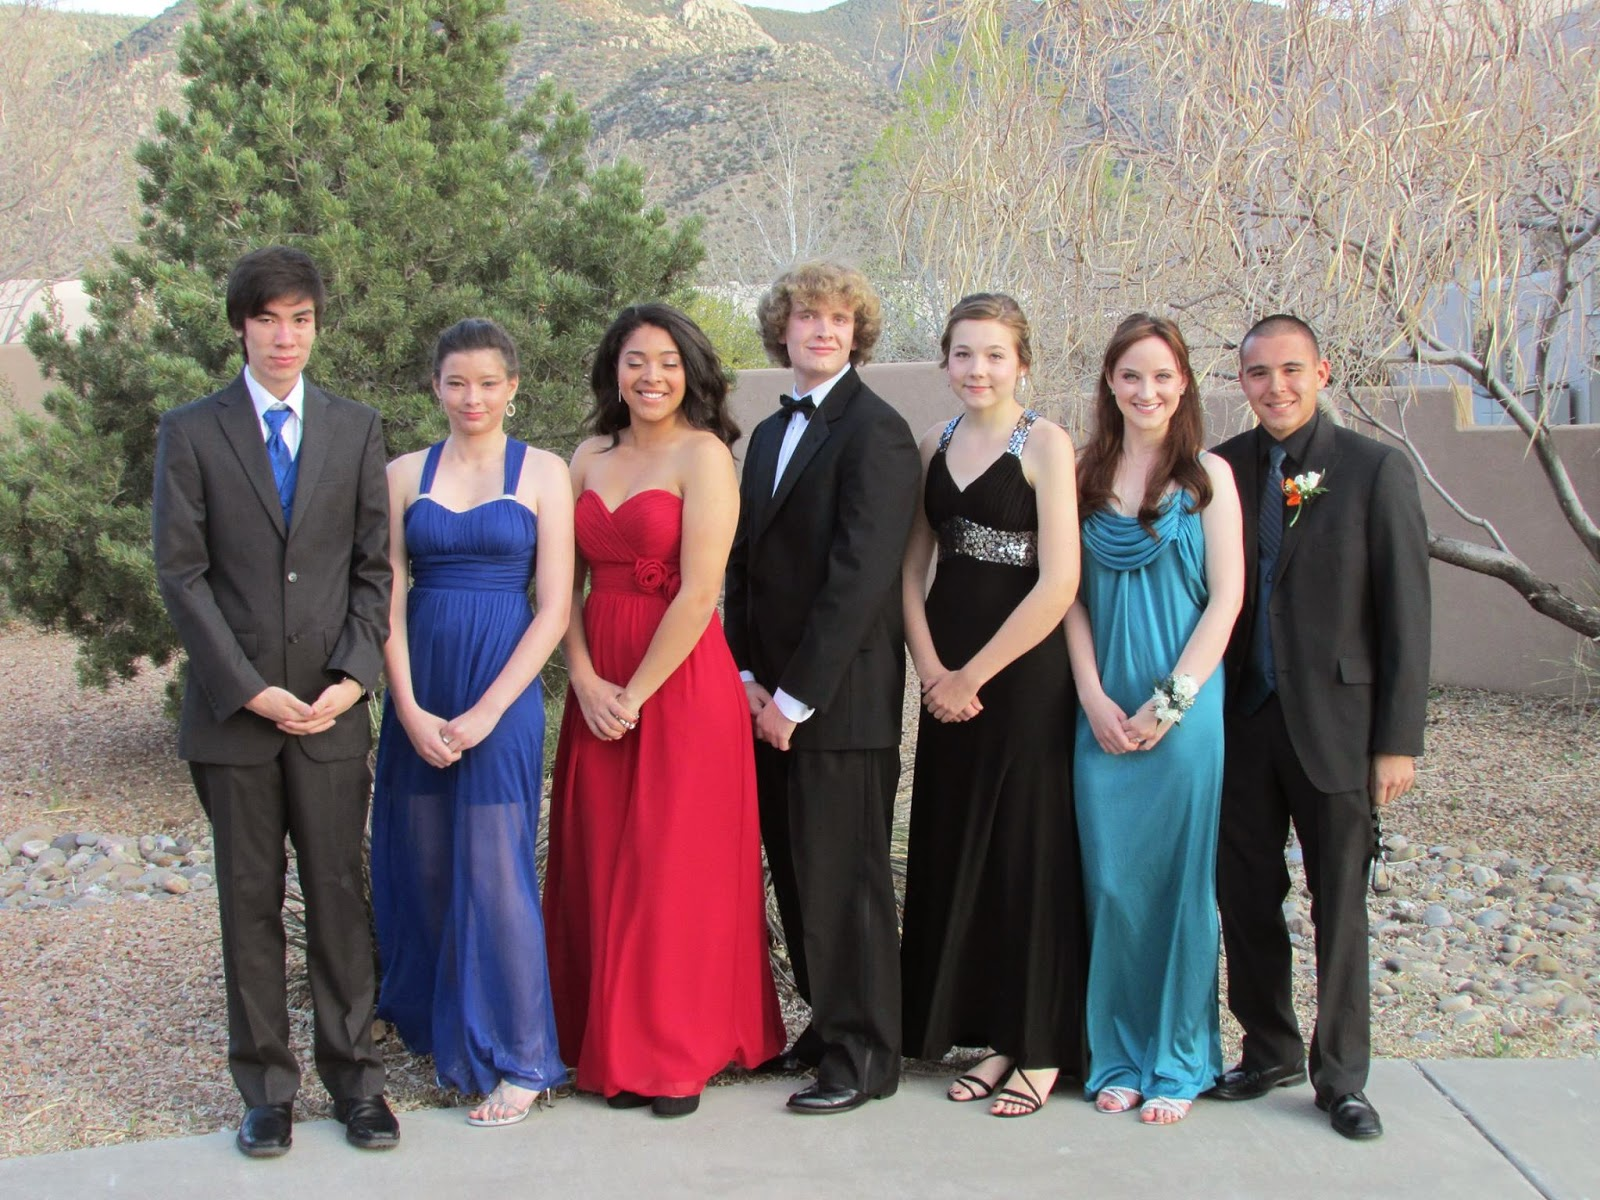 prom picture, group